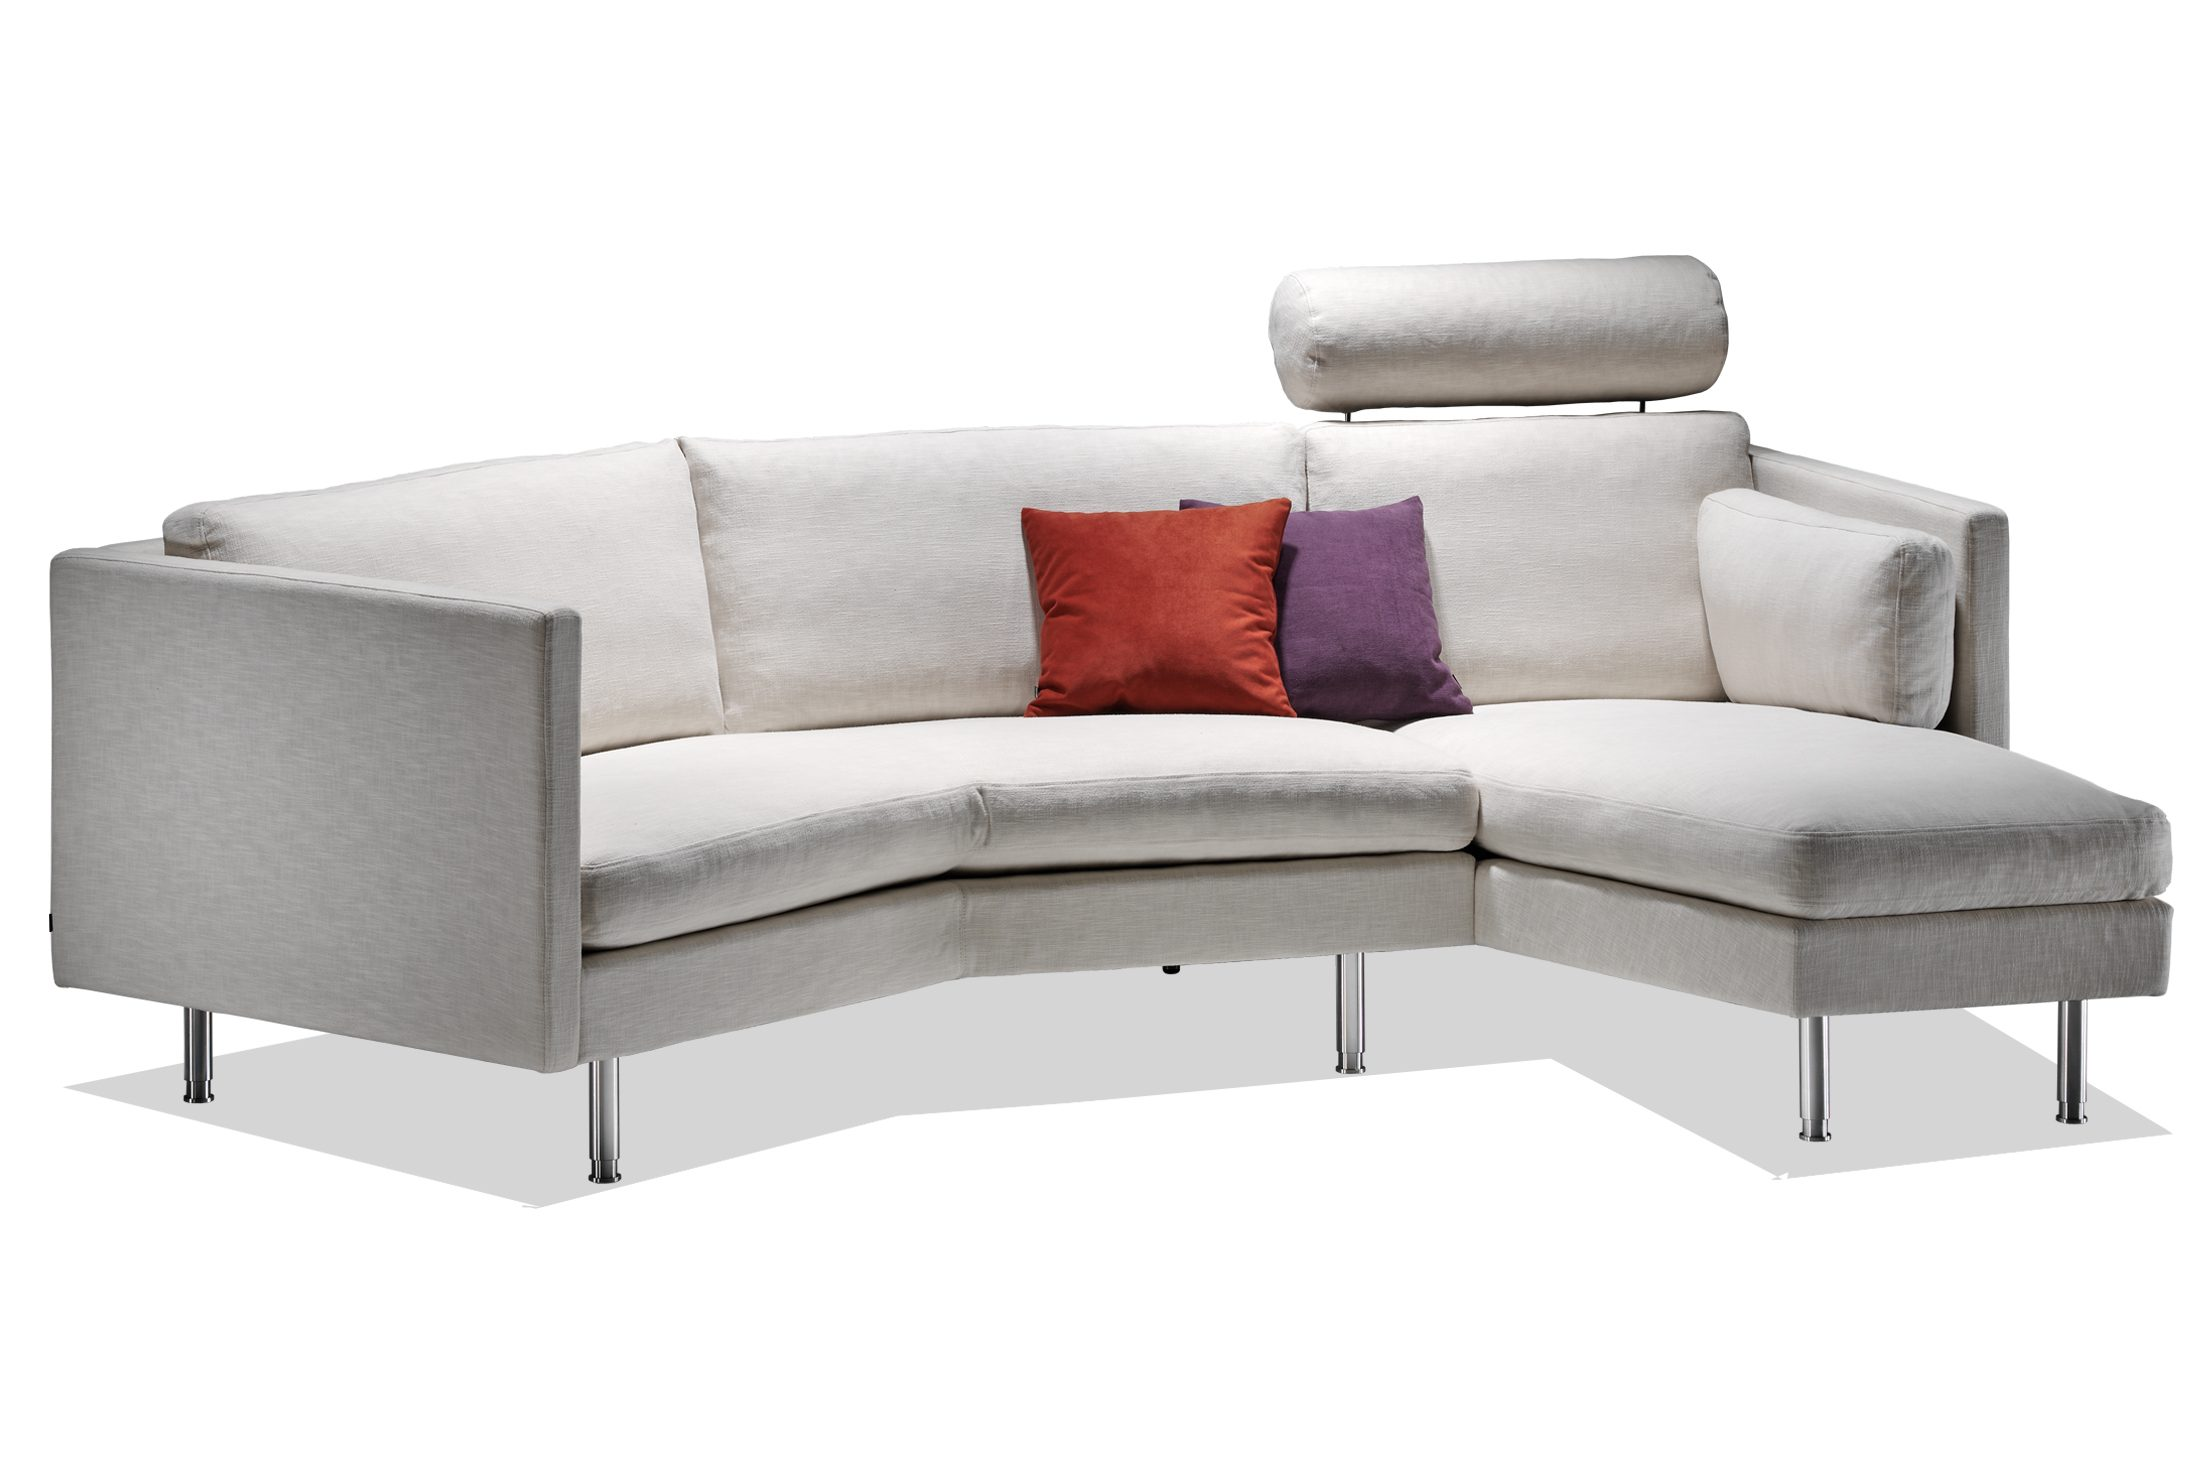 Sessel Tonacu Rund Sofa Latest Rund Sofa With Rund Sofa Beautiful